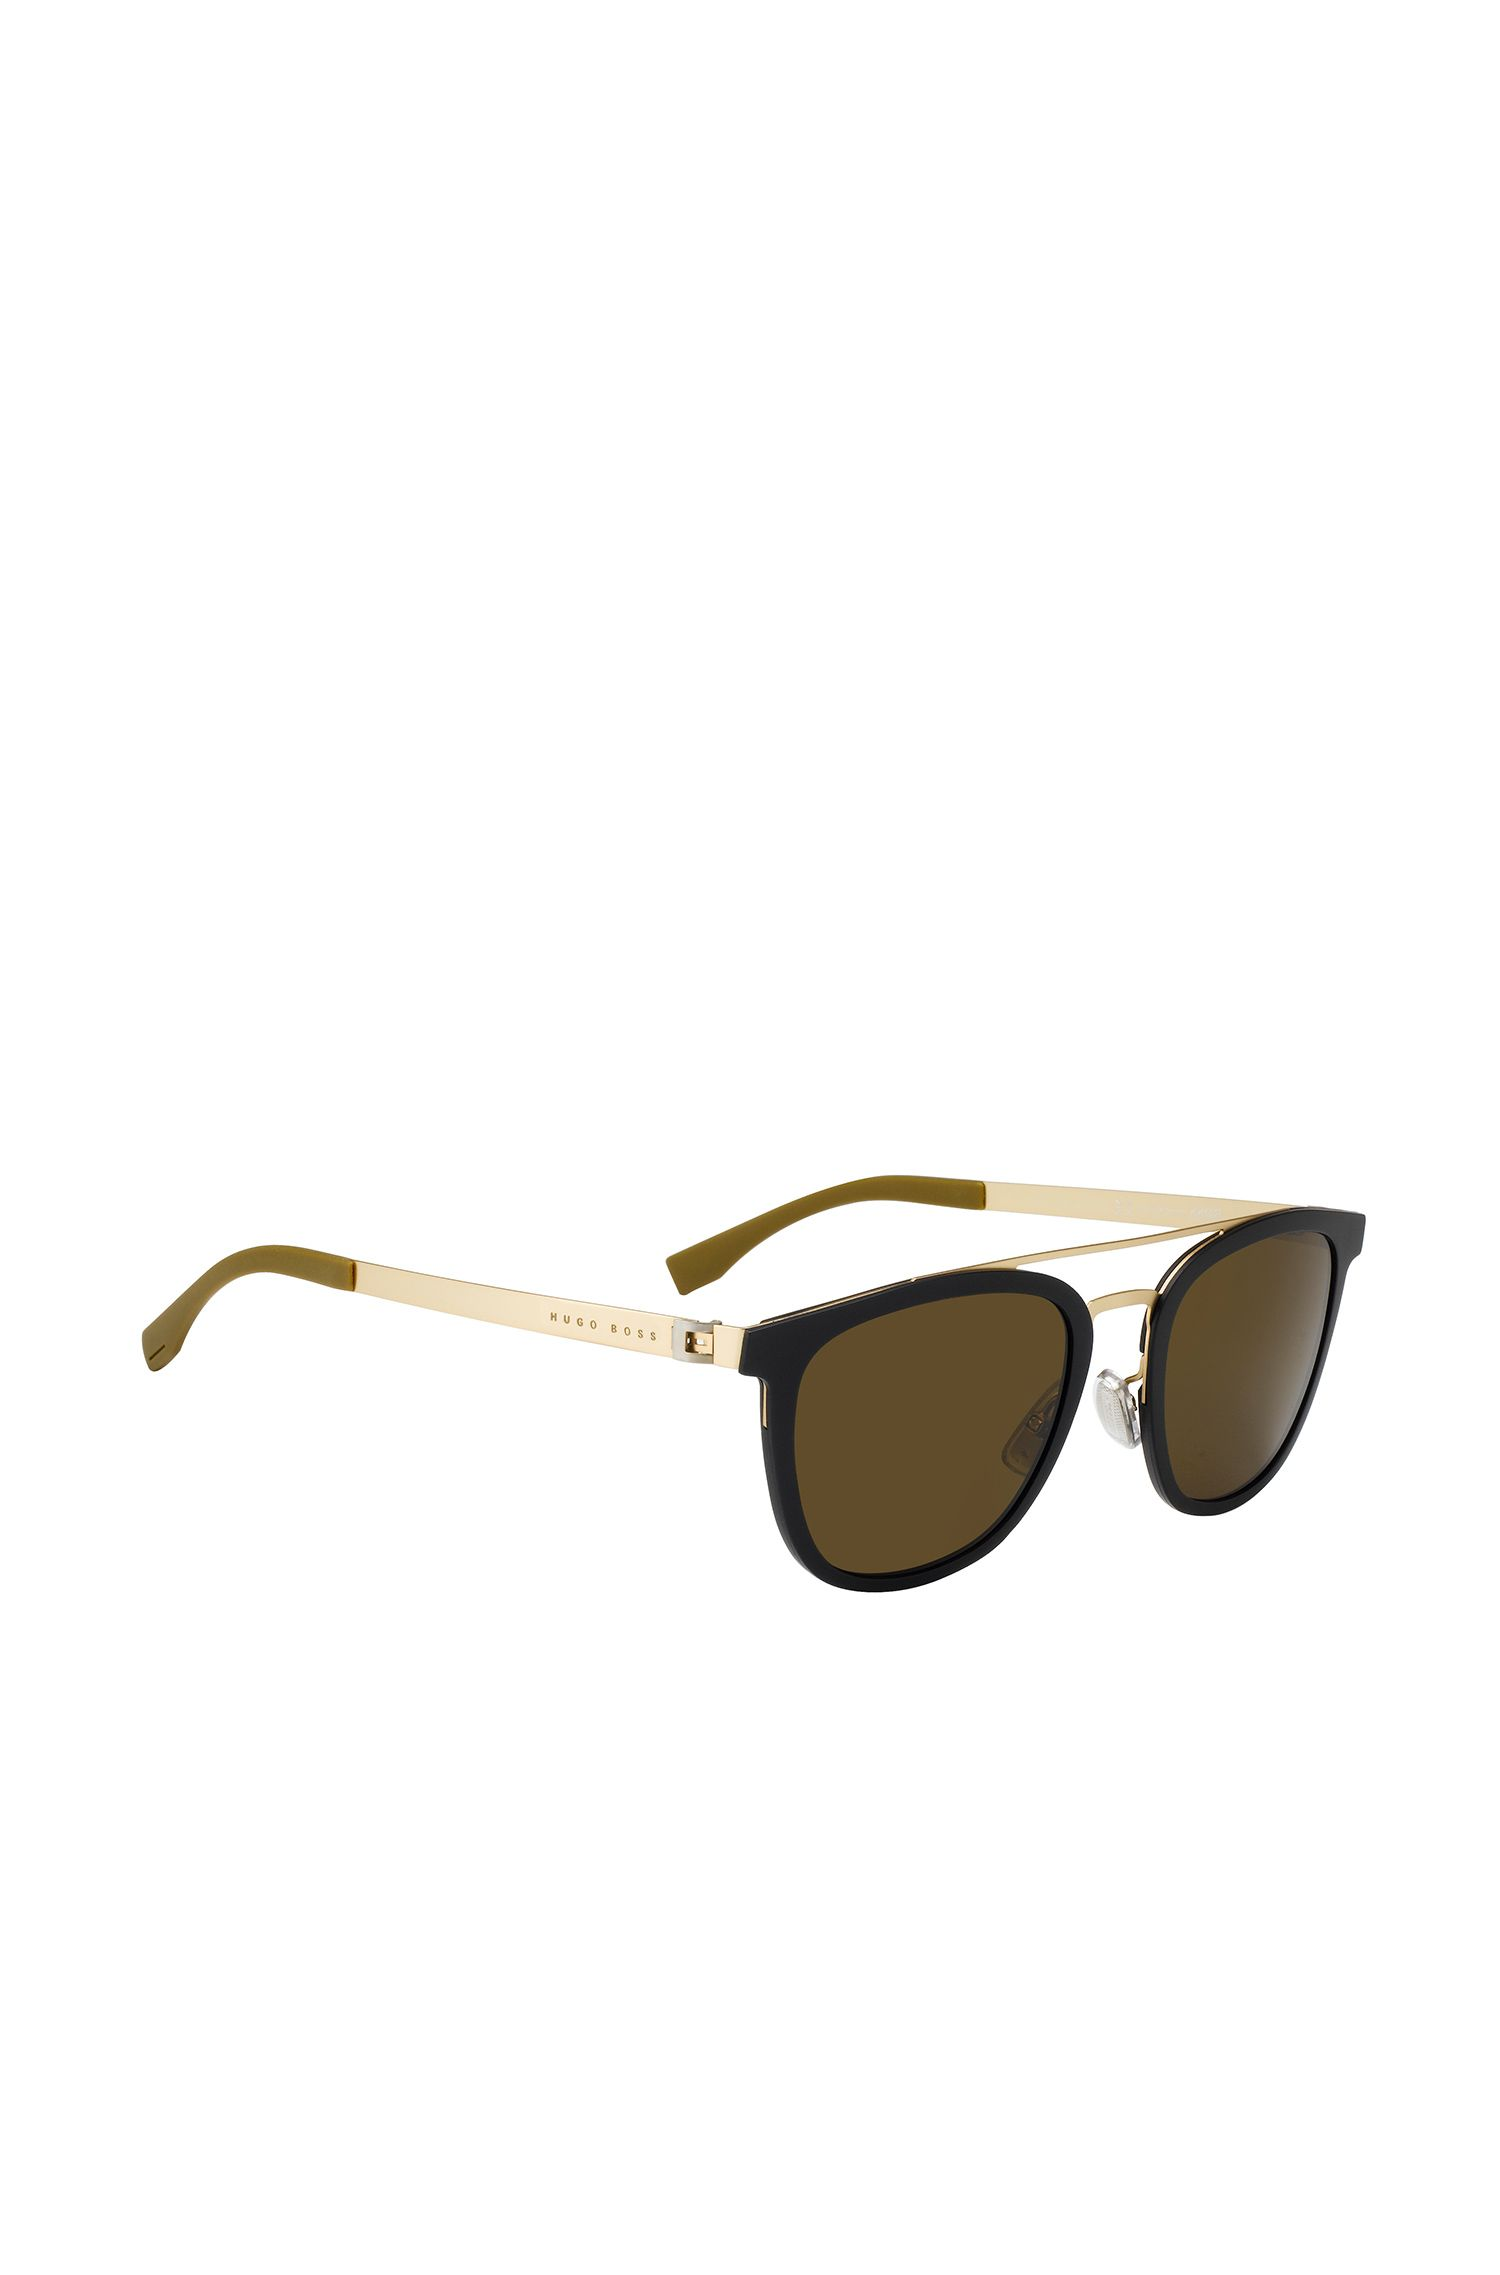 'BOSS 0838' | Gold Tone Stainless Steel Round Glasses